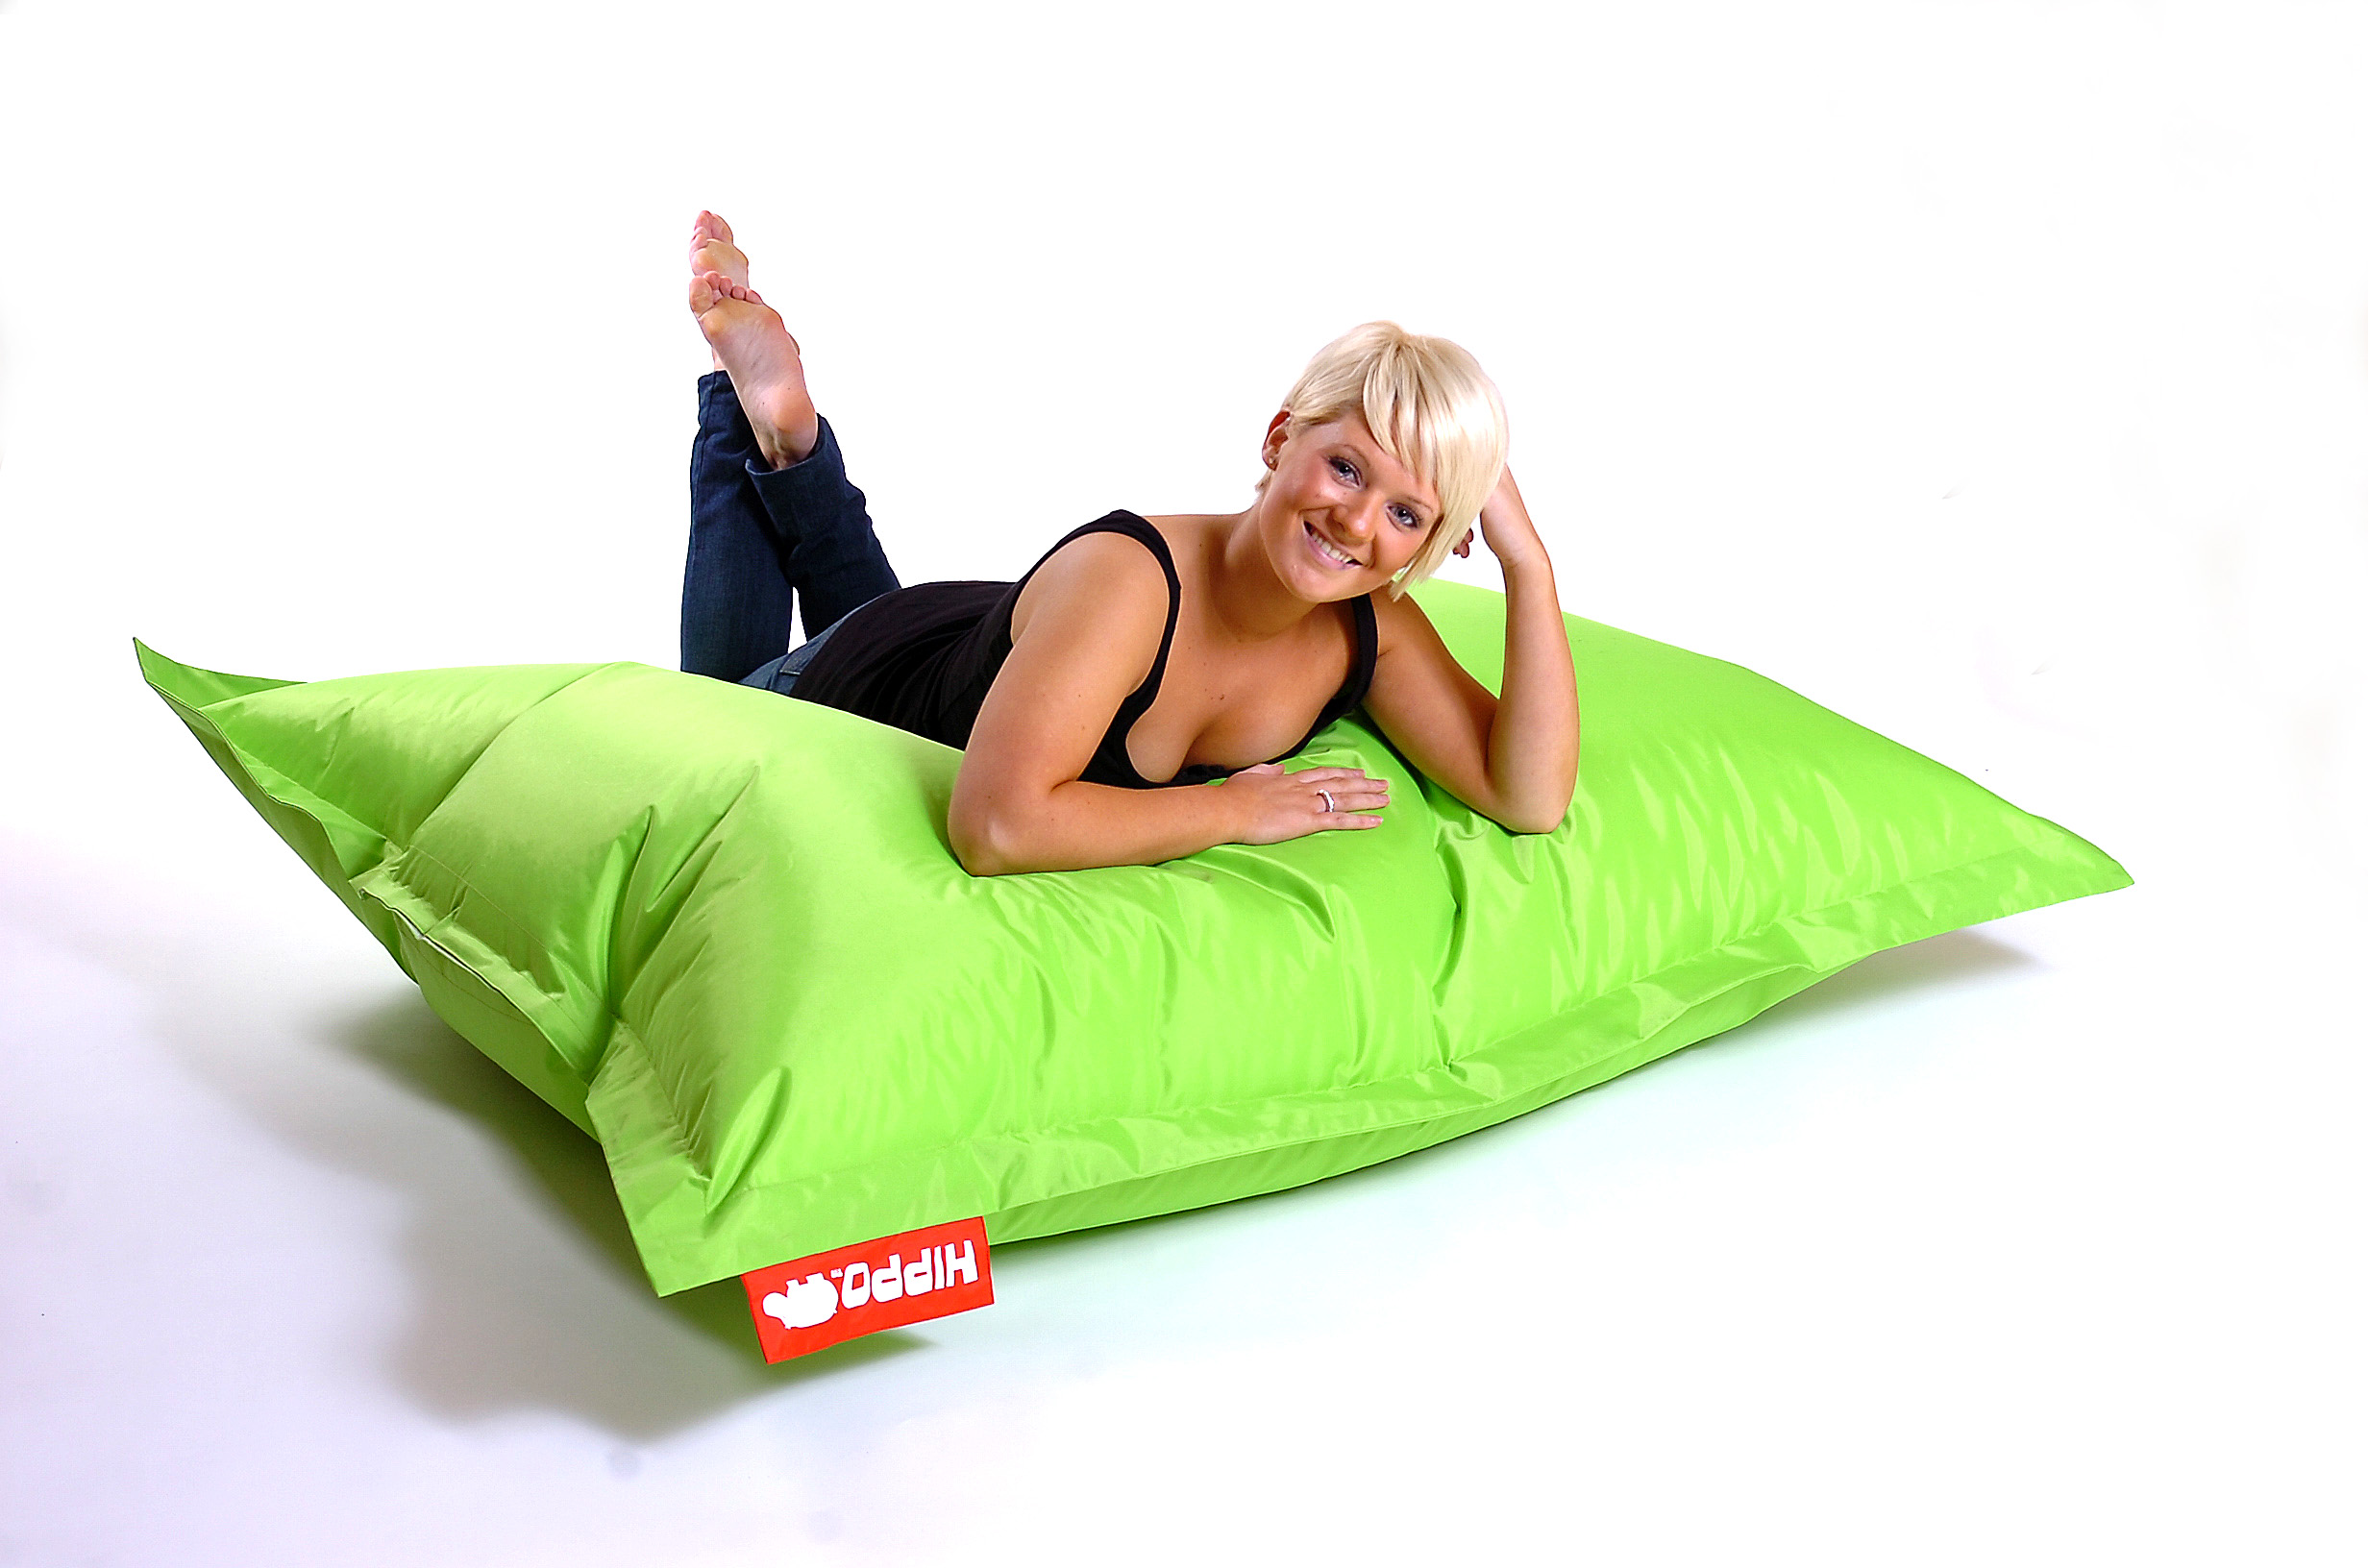 Lime Hippo XXL Adult Bean Bag Water Resistant Beanbag Lounger